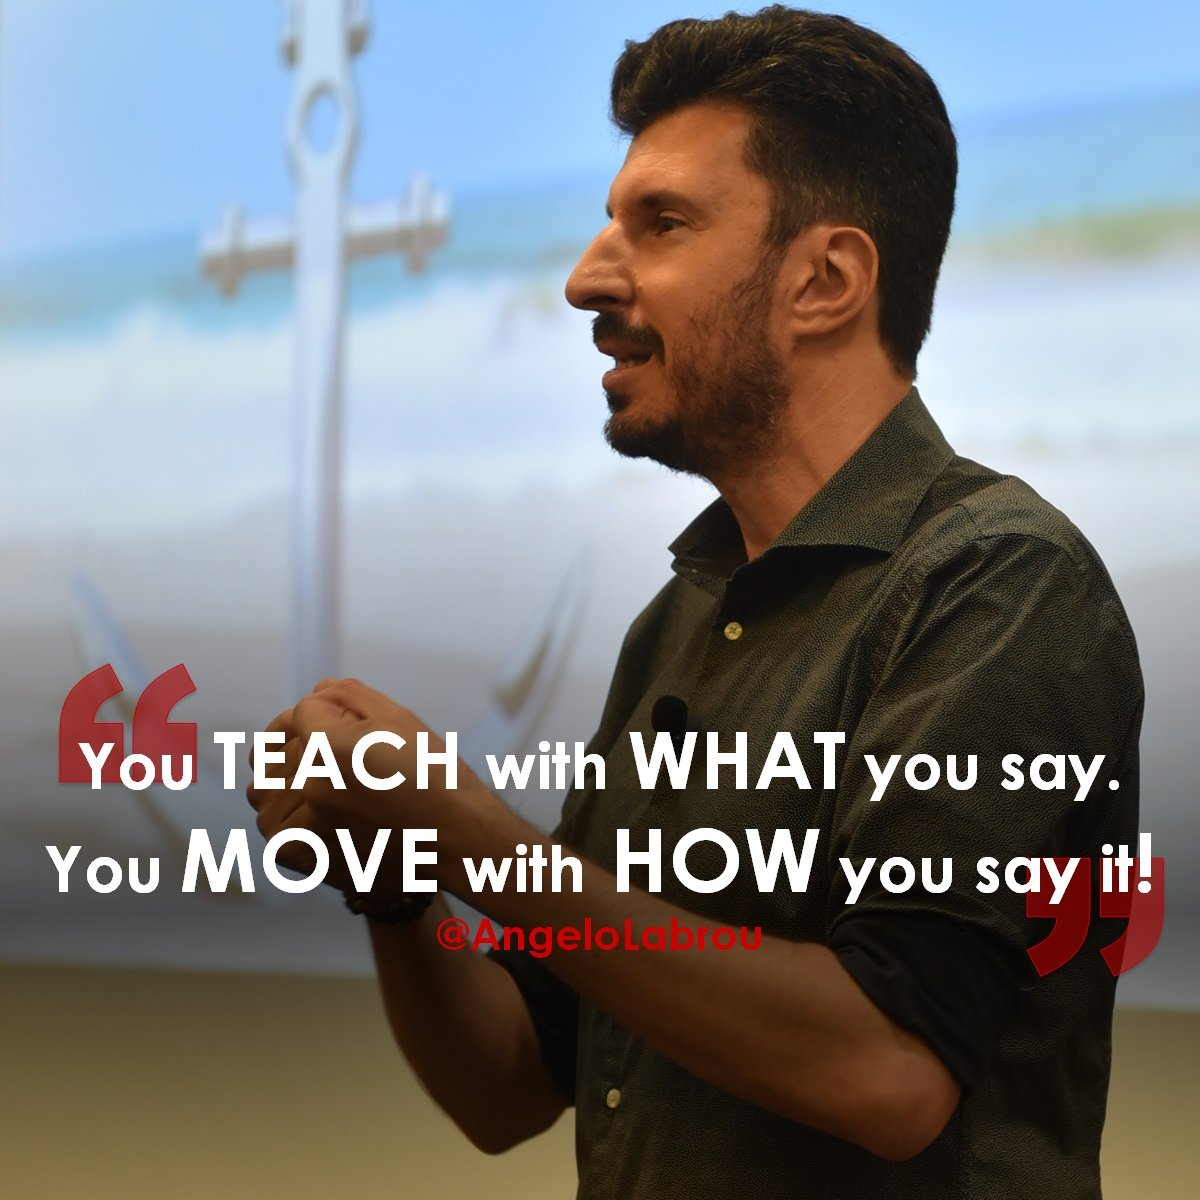 you teach with what you say, you move others with how you say it ~ Angelo Labrou